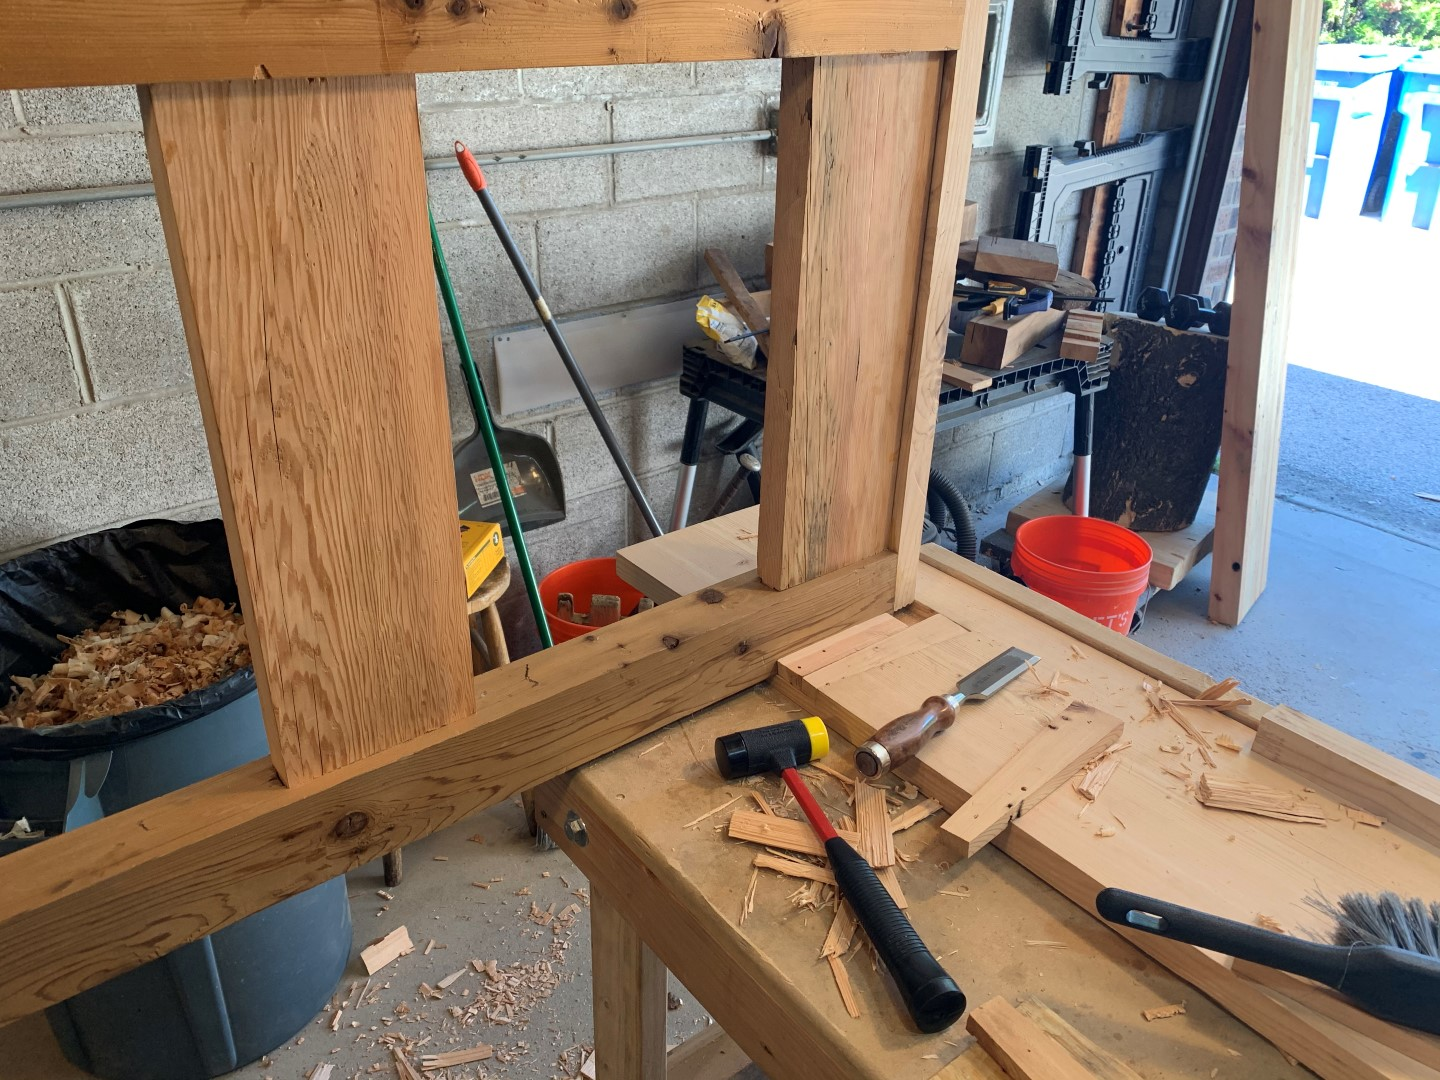 jelster-workbench-construction-1748